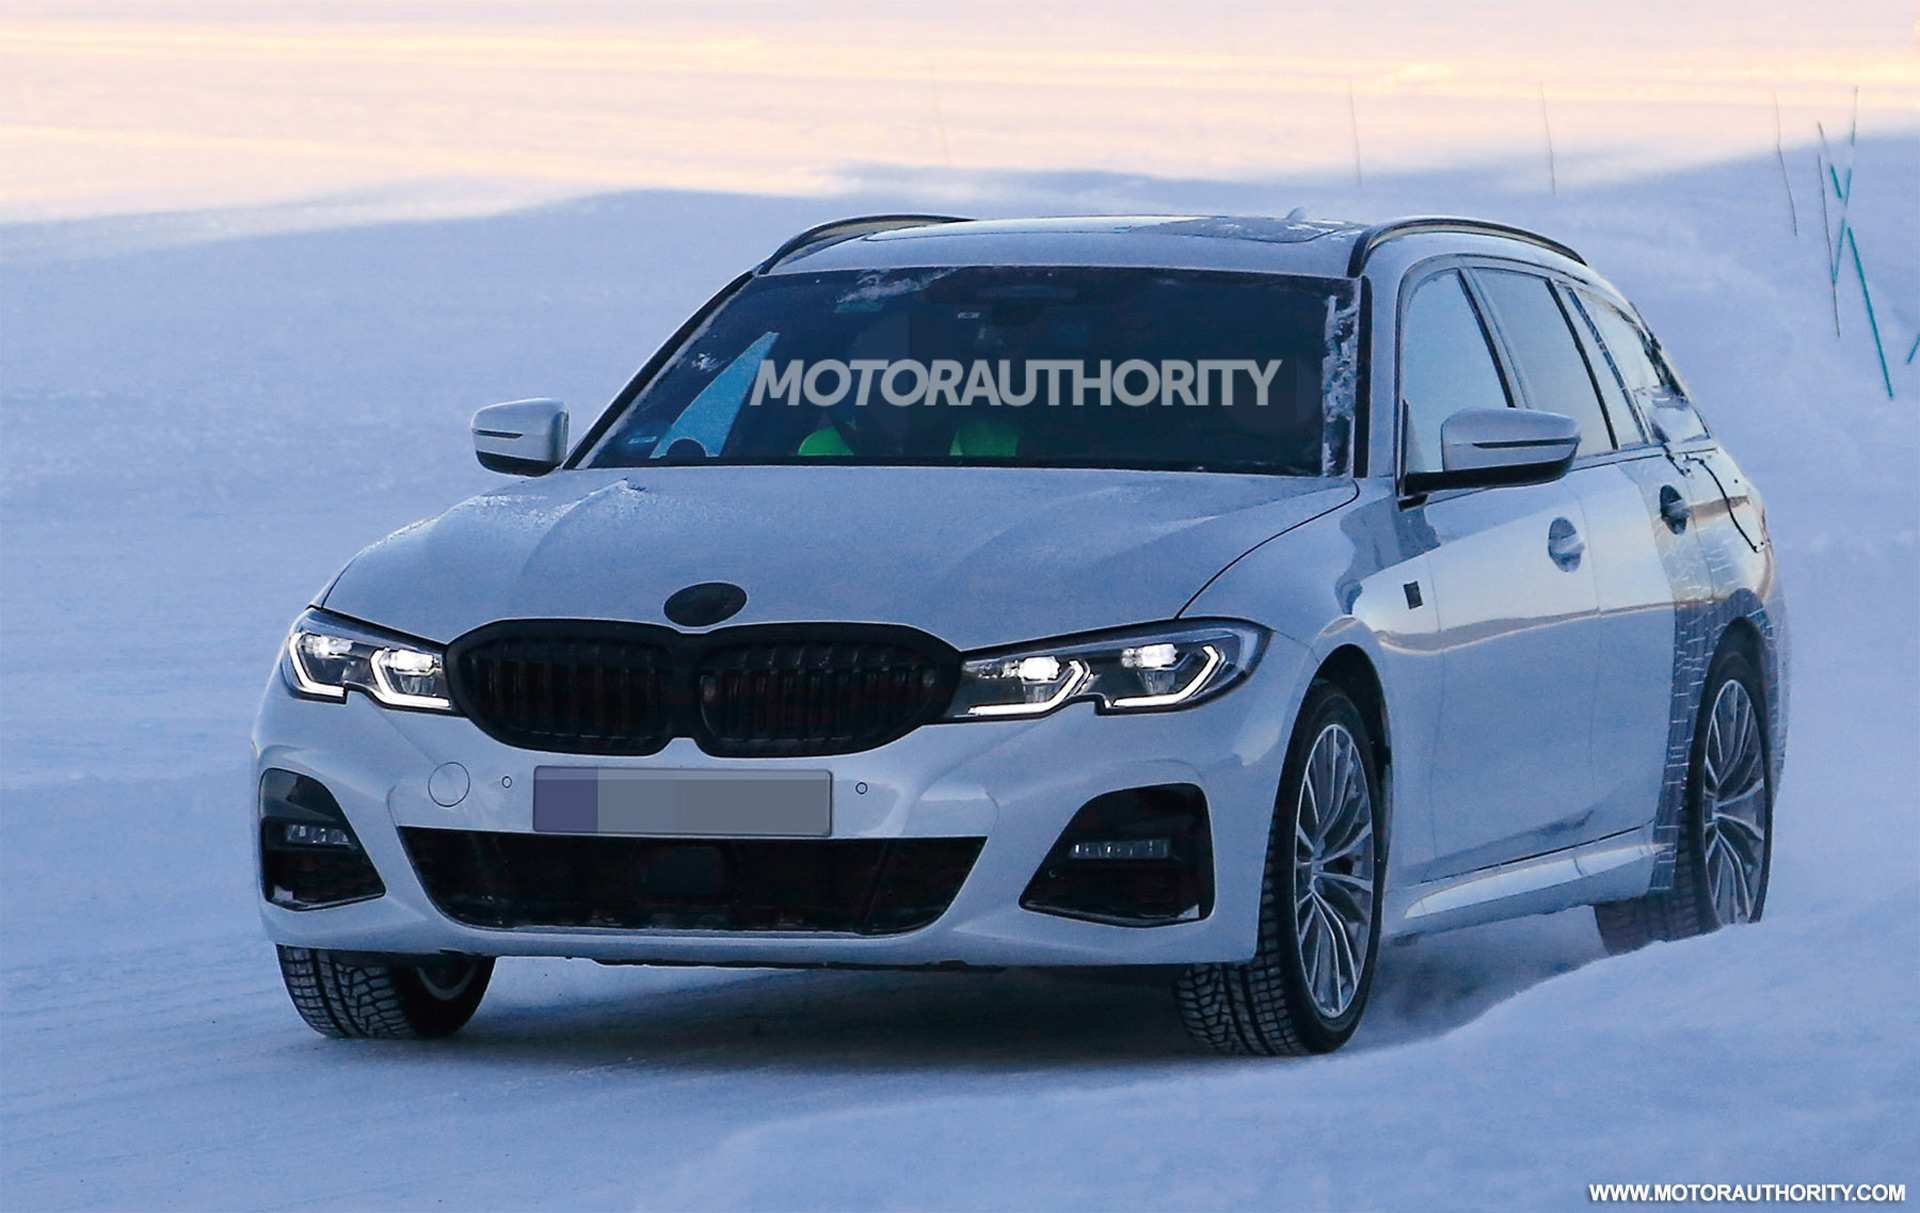 41 A 2020 BMW 3 Series Brings Style